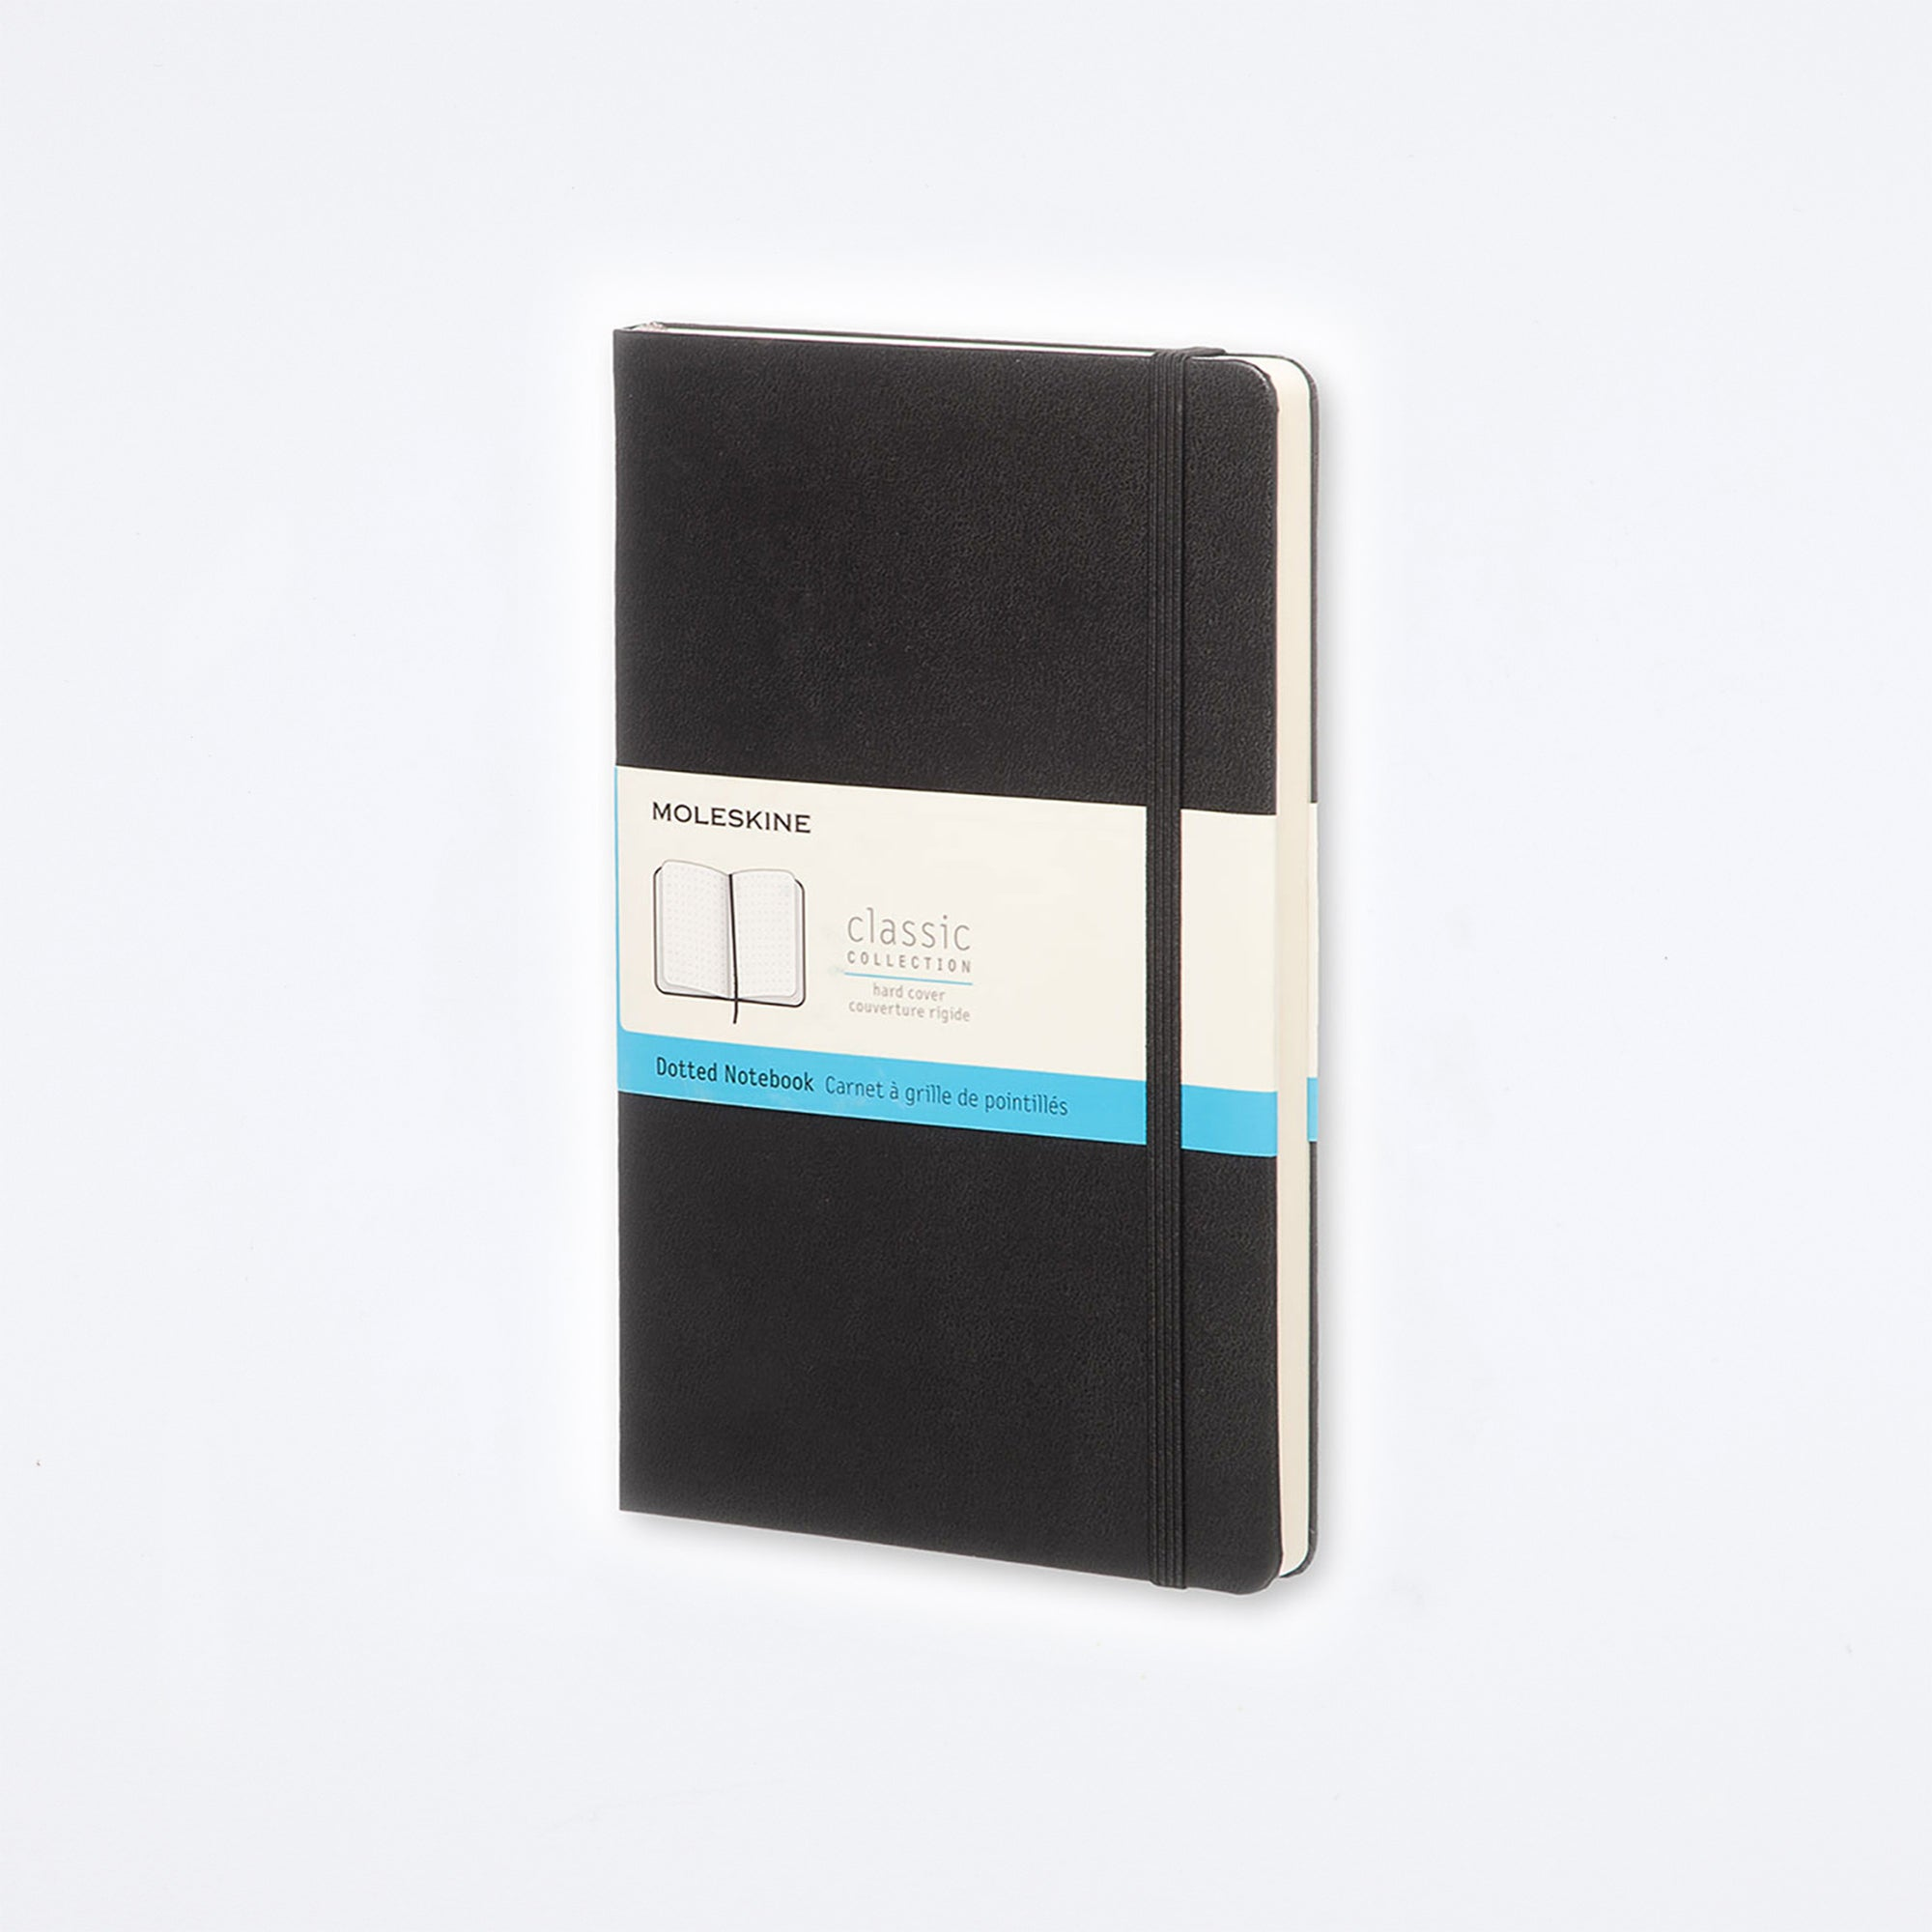 Moleskine Black Large Notebook